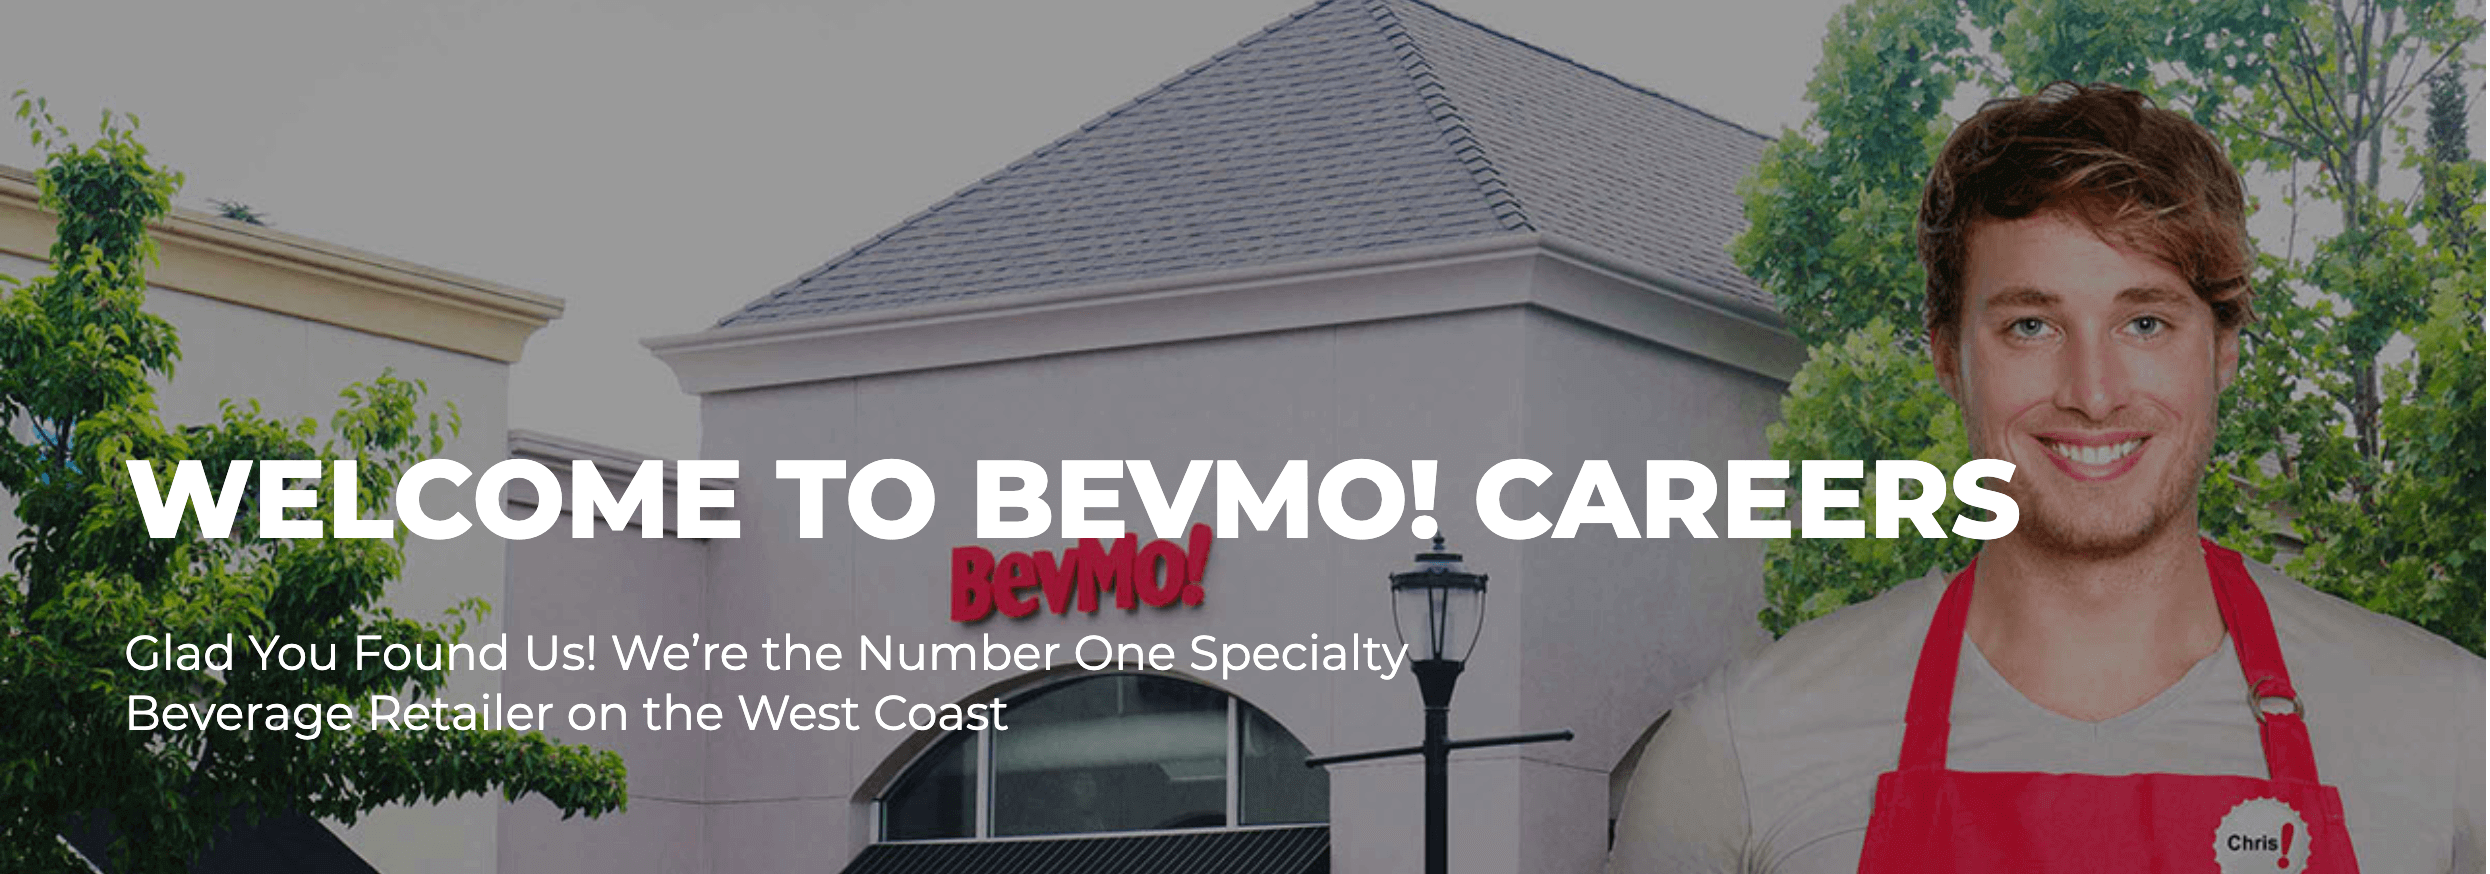 WELCOME TO BEVMO! CAREERS